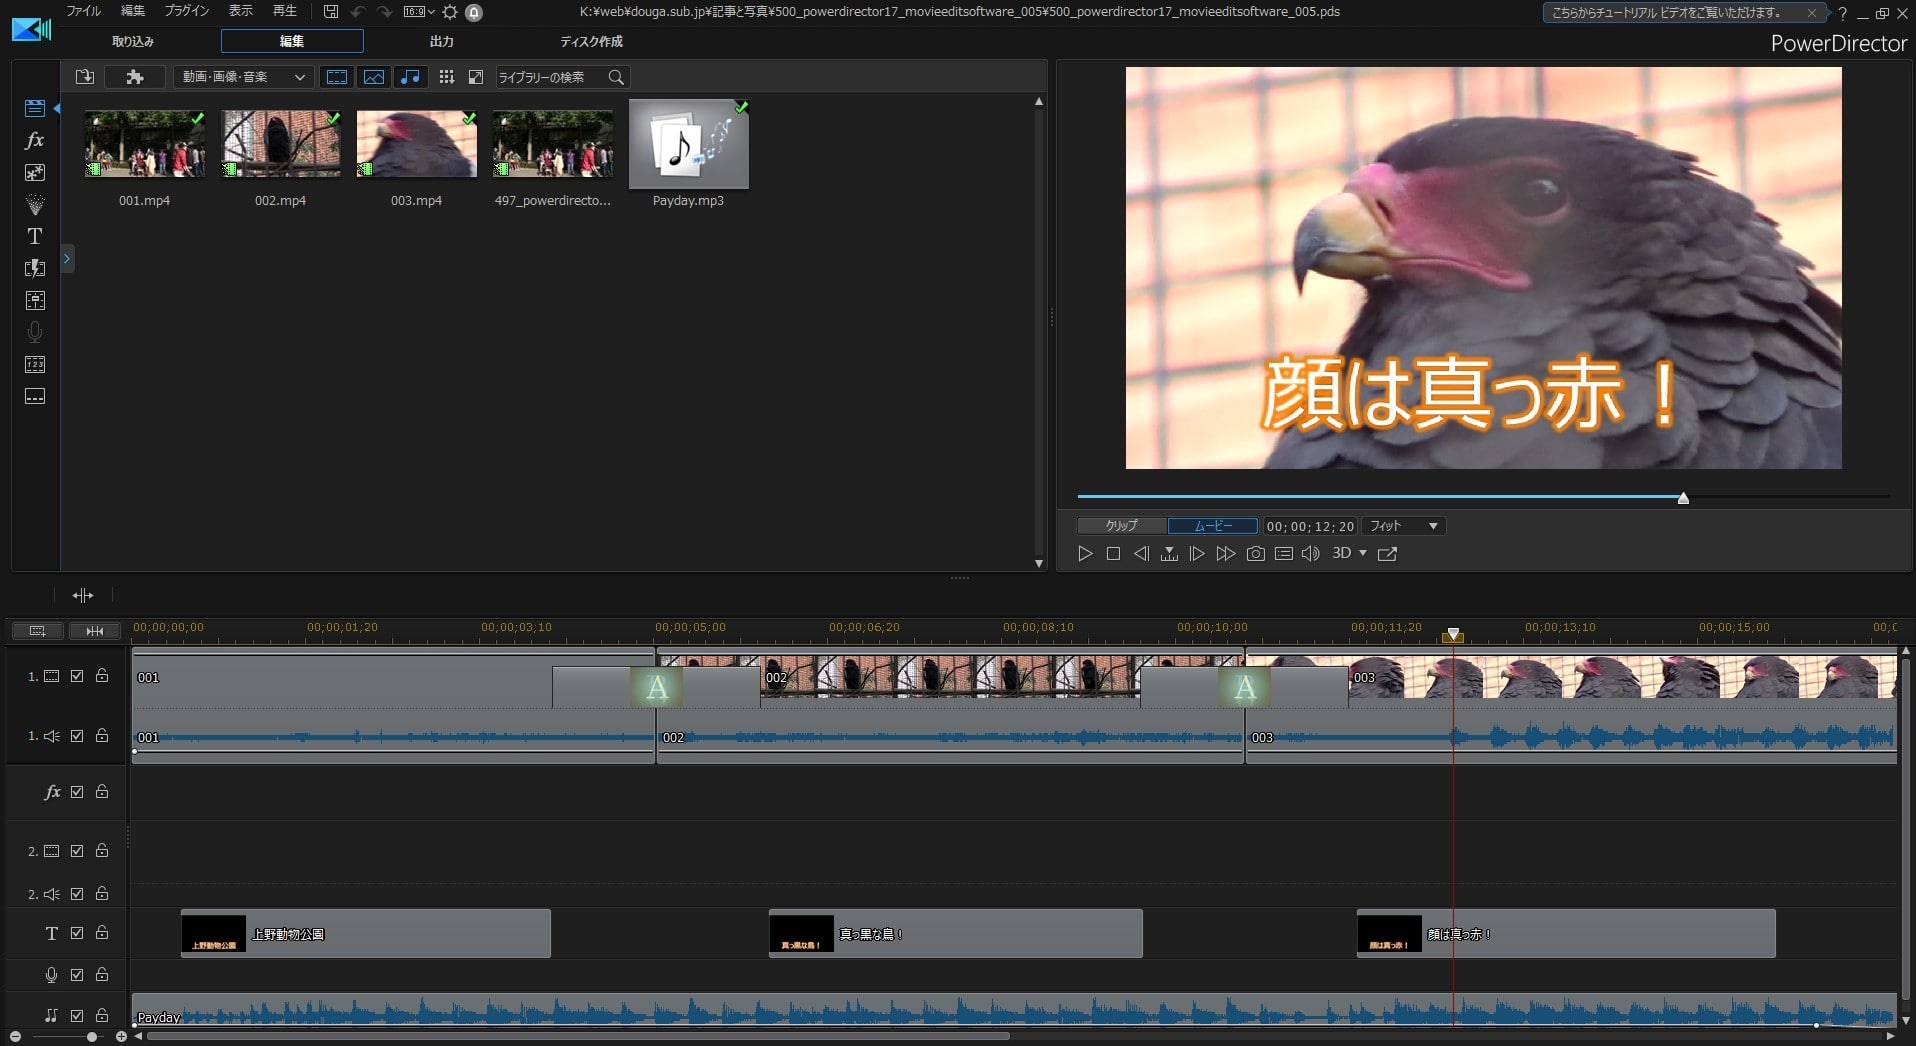 舊 版 movie maker